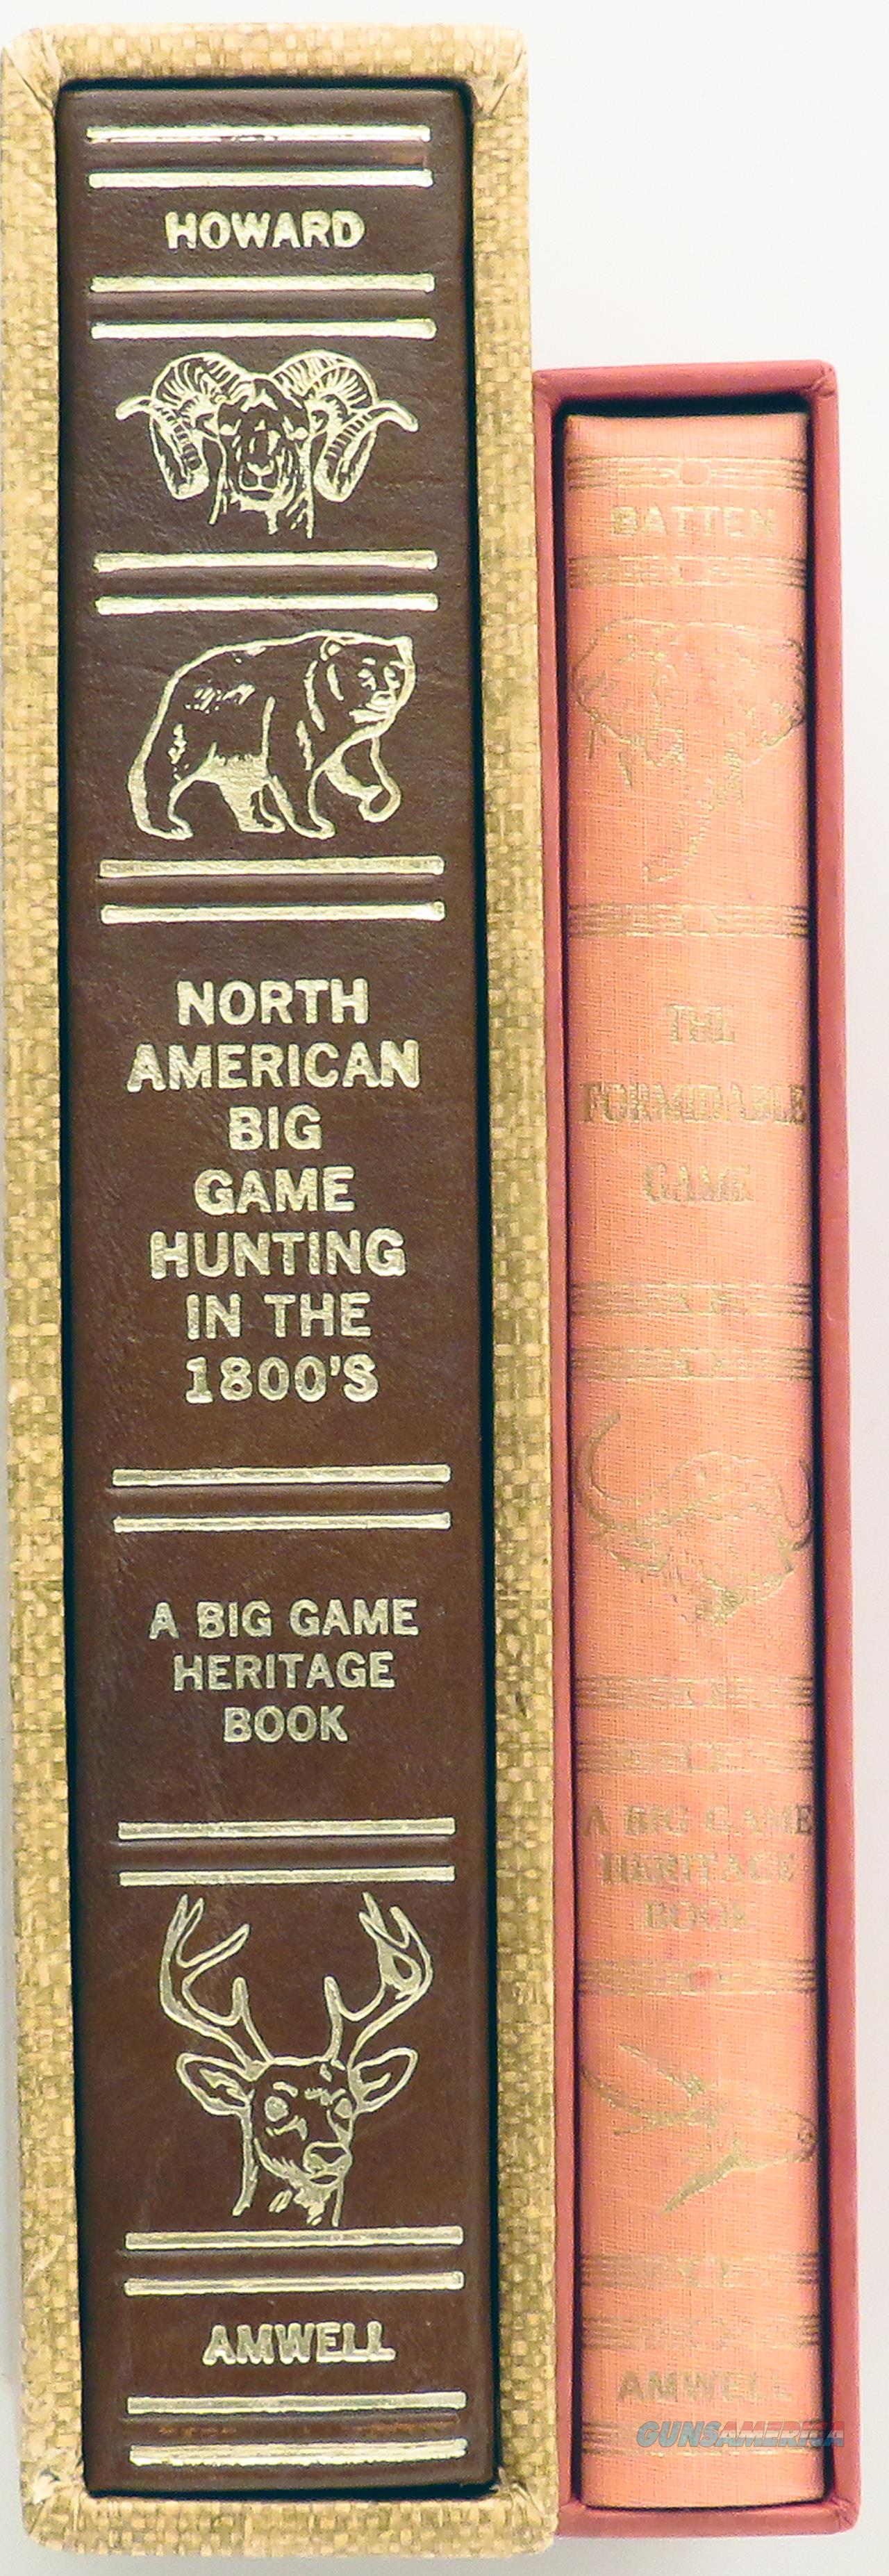 Amwell Press - two Big Game Heritage Books, Batten, Howard,   Non-Guns > Books & Magazines